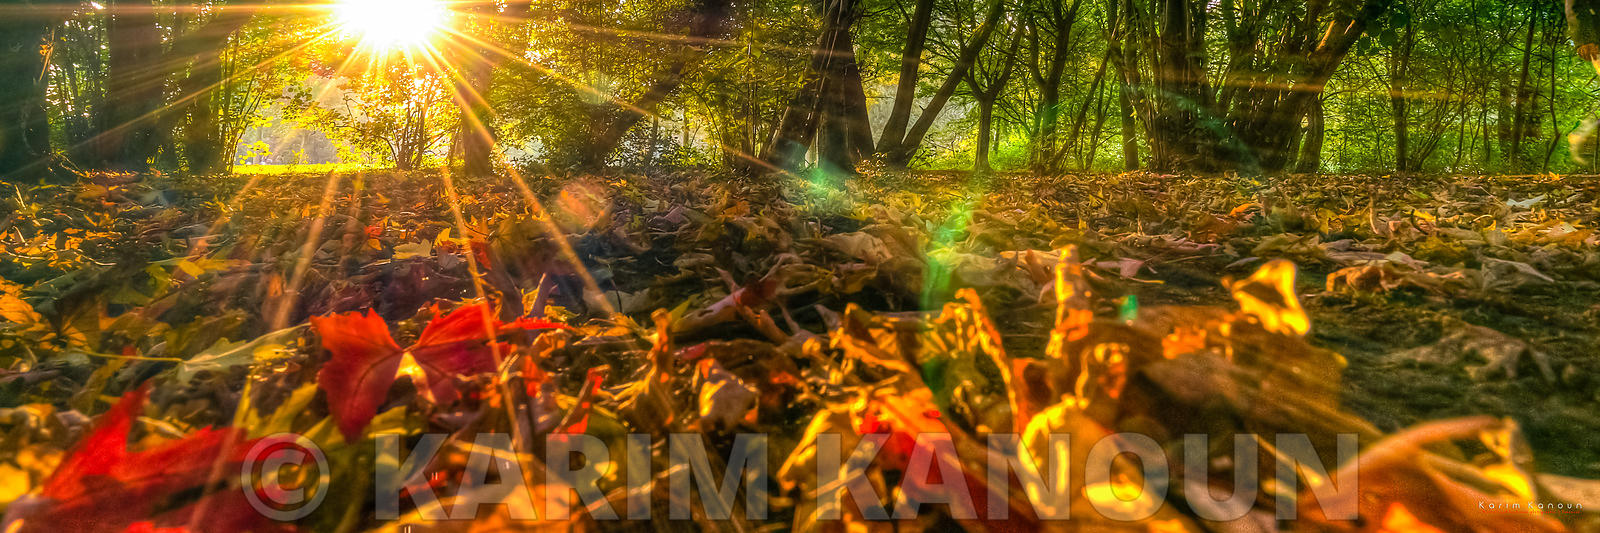 Panorama - Autumn sunshine in the wood